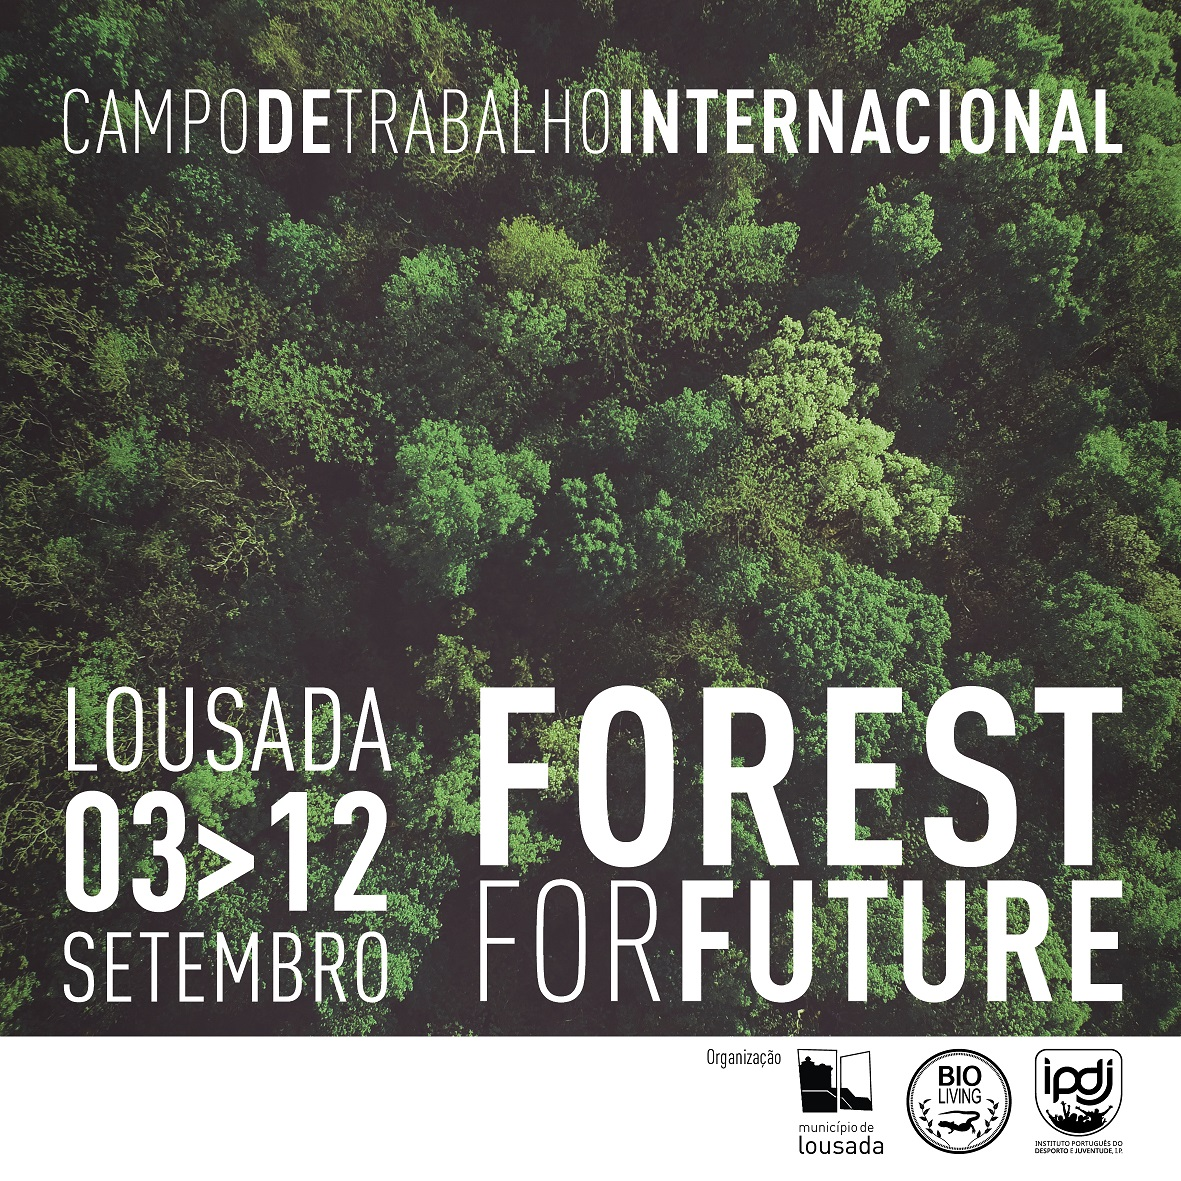 """Forest For Future"" Campo de Voluntariado Internacional decorre de  3 e 12 de setembro, em Lustosa"